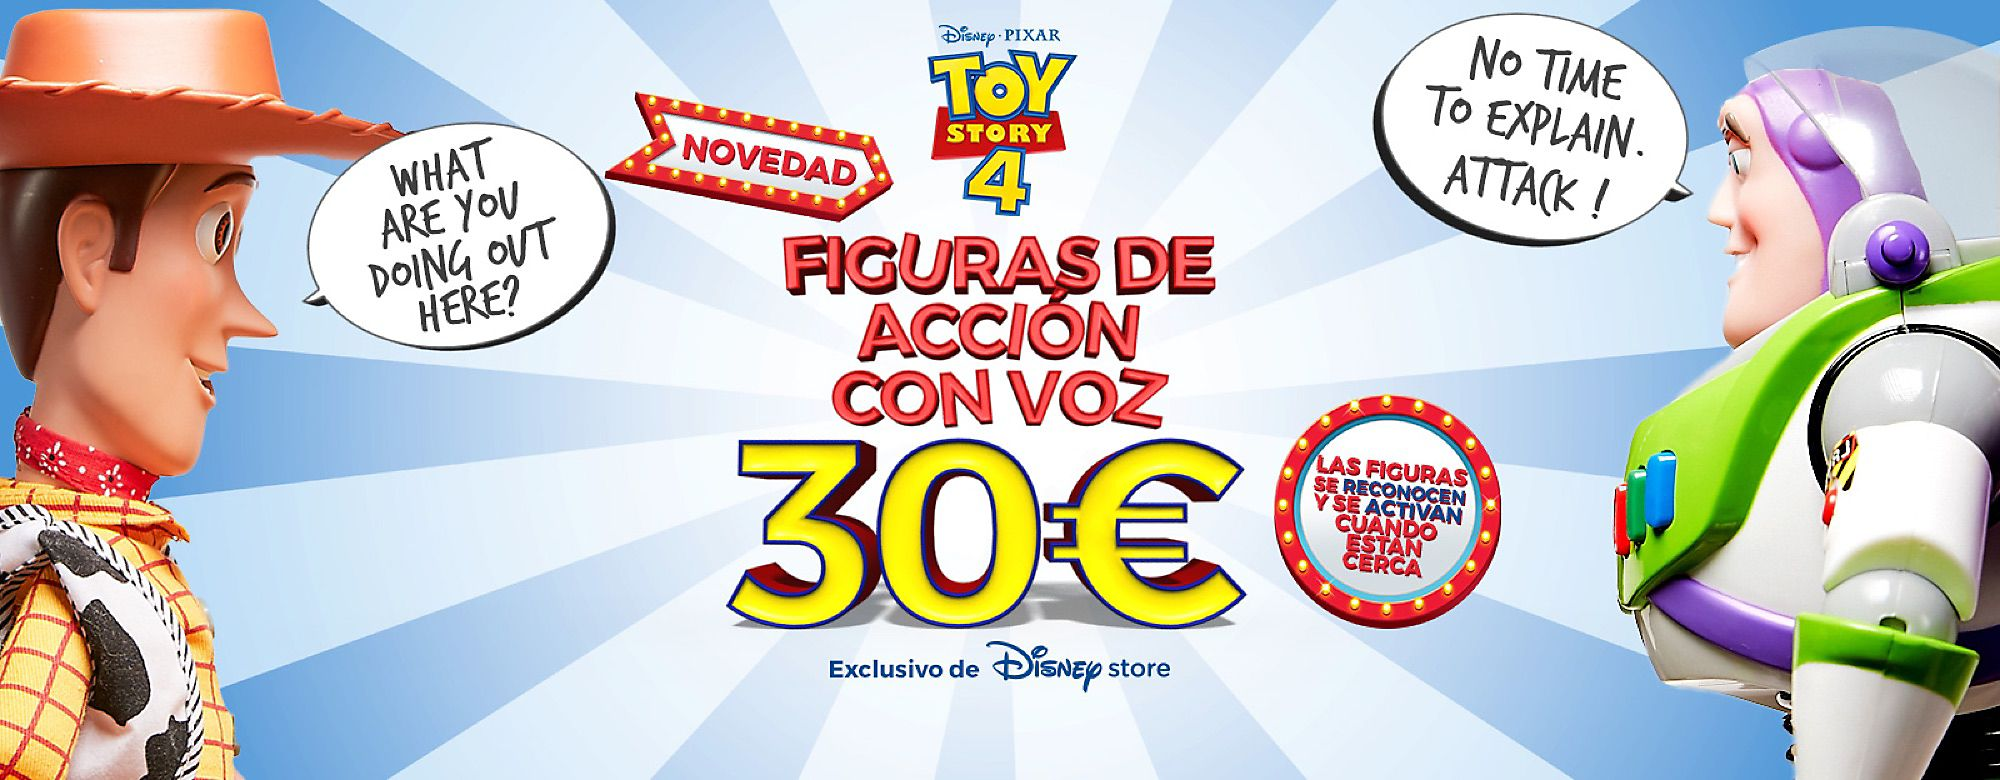 COMPRAR TOY STORY 4